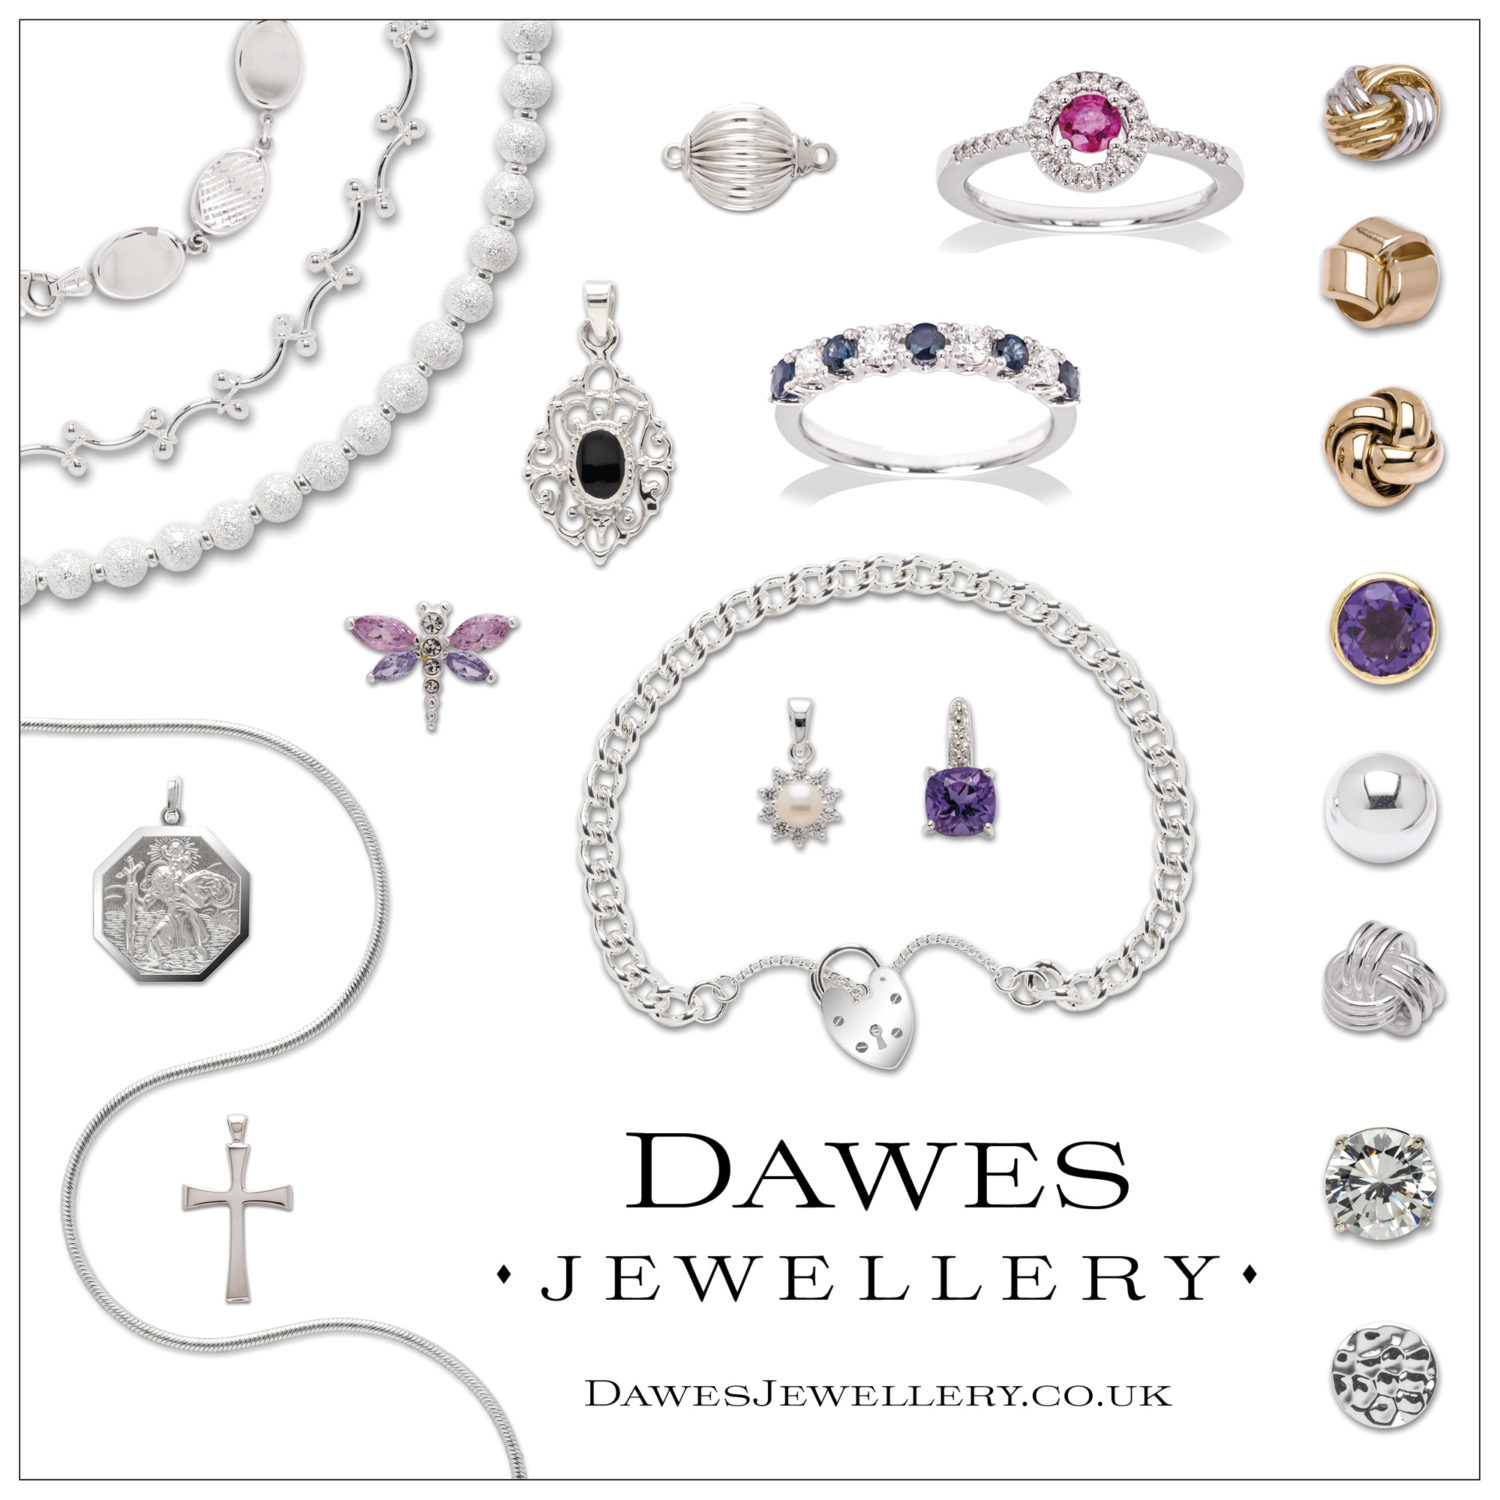 Dawes Jewellery Square Designs